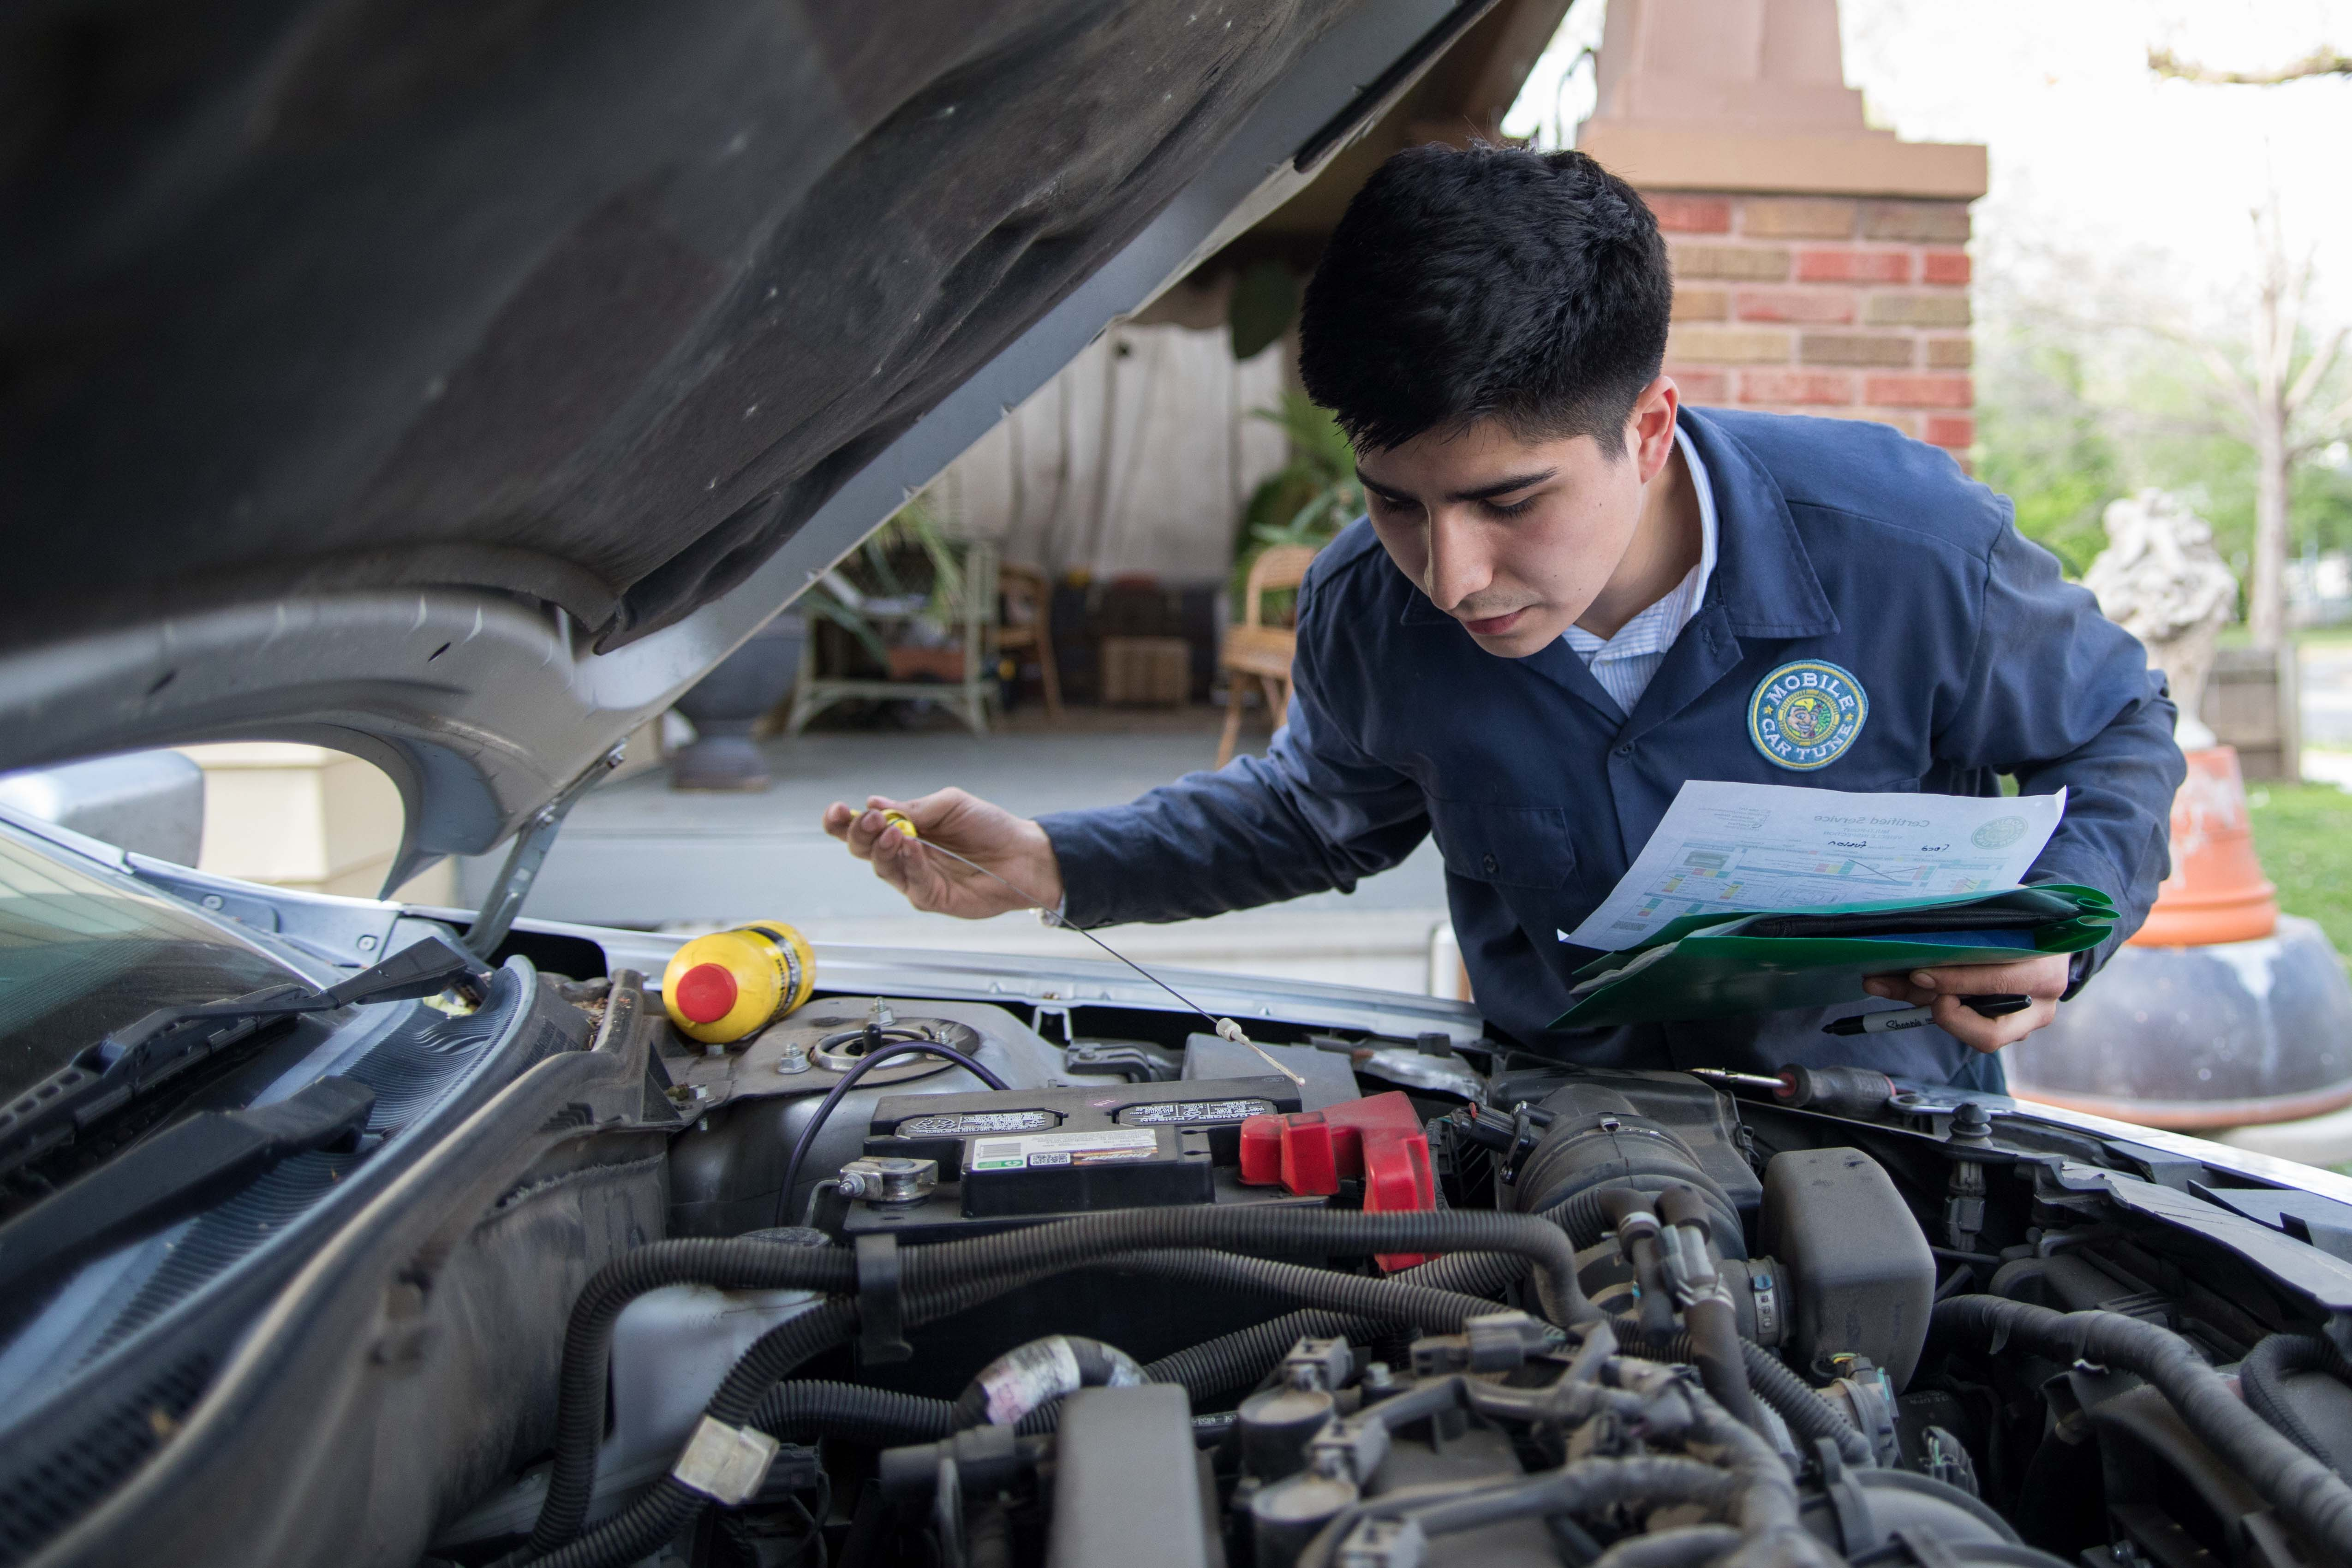 Ernie Cisneros checks the transmission fluid for his client Dan Edwards on Wednesday evening. Cisneros owns a business called Mobile Car Tune that performs car maintenance services at people's homes.